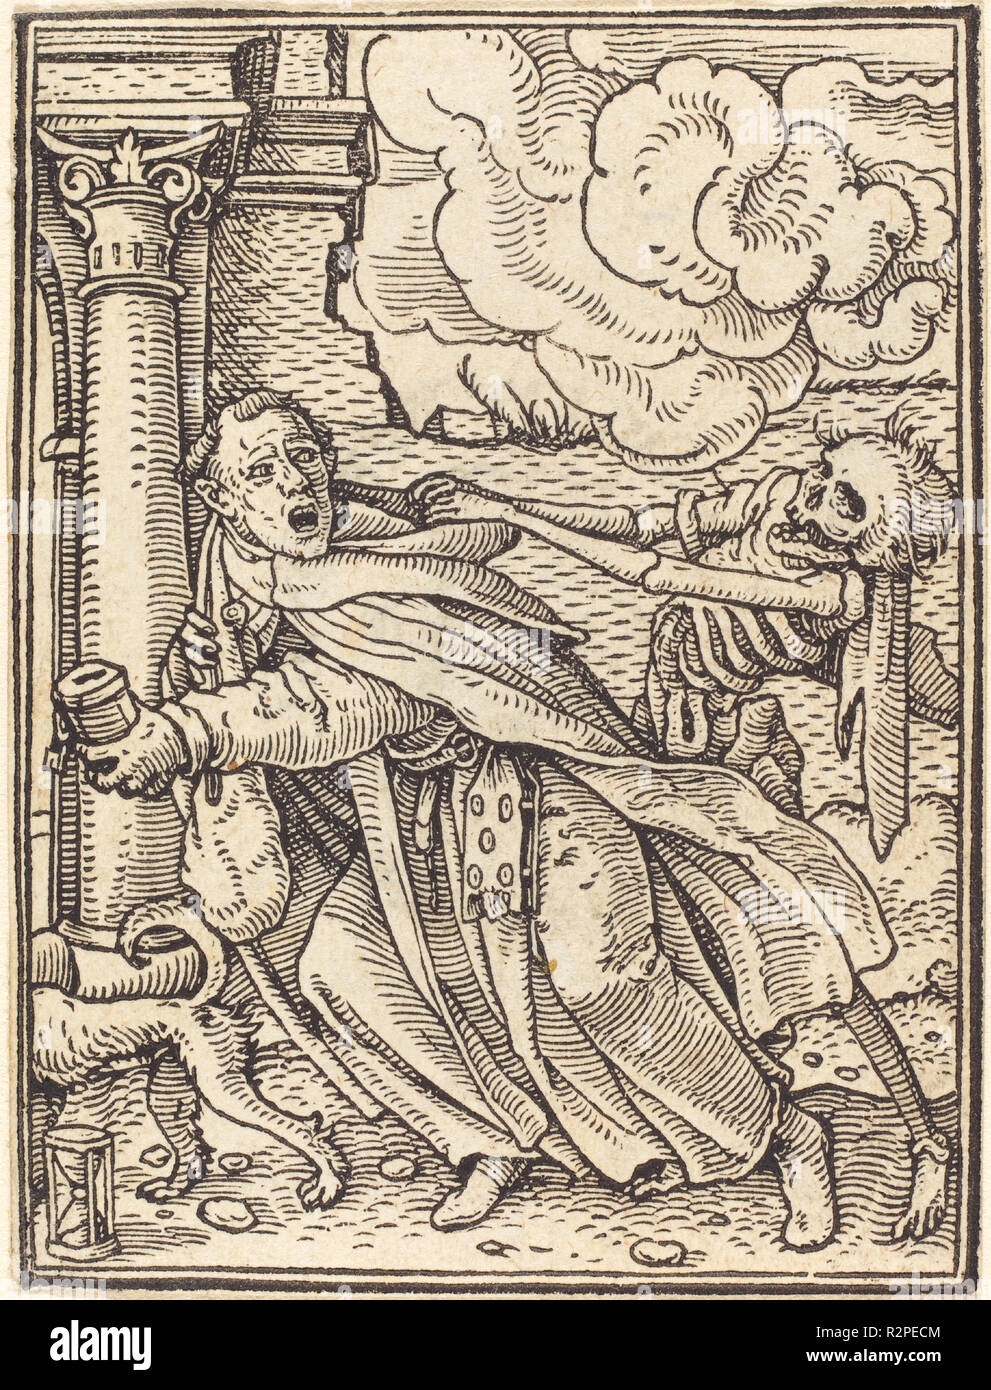 Mendicant Friar. Medium: woodcut. Museum: National Gallery of Art, Washington DC. Author: Hans Holbein the Younger. - Stock Image